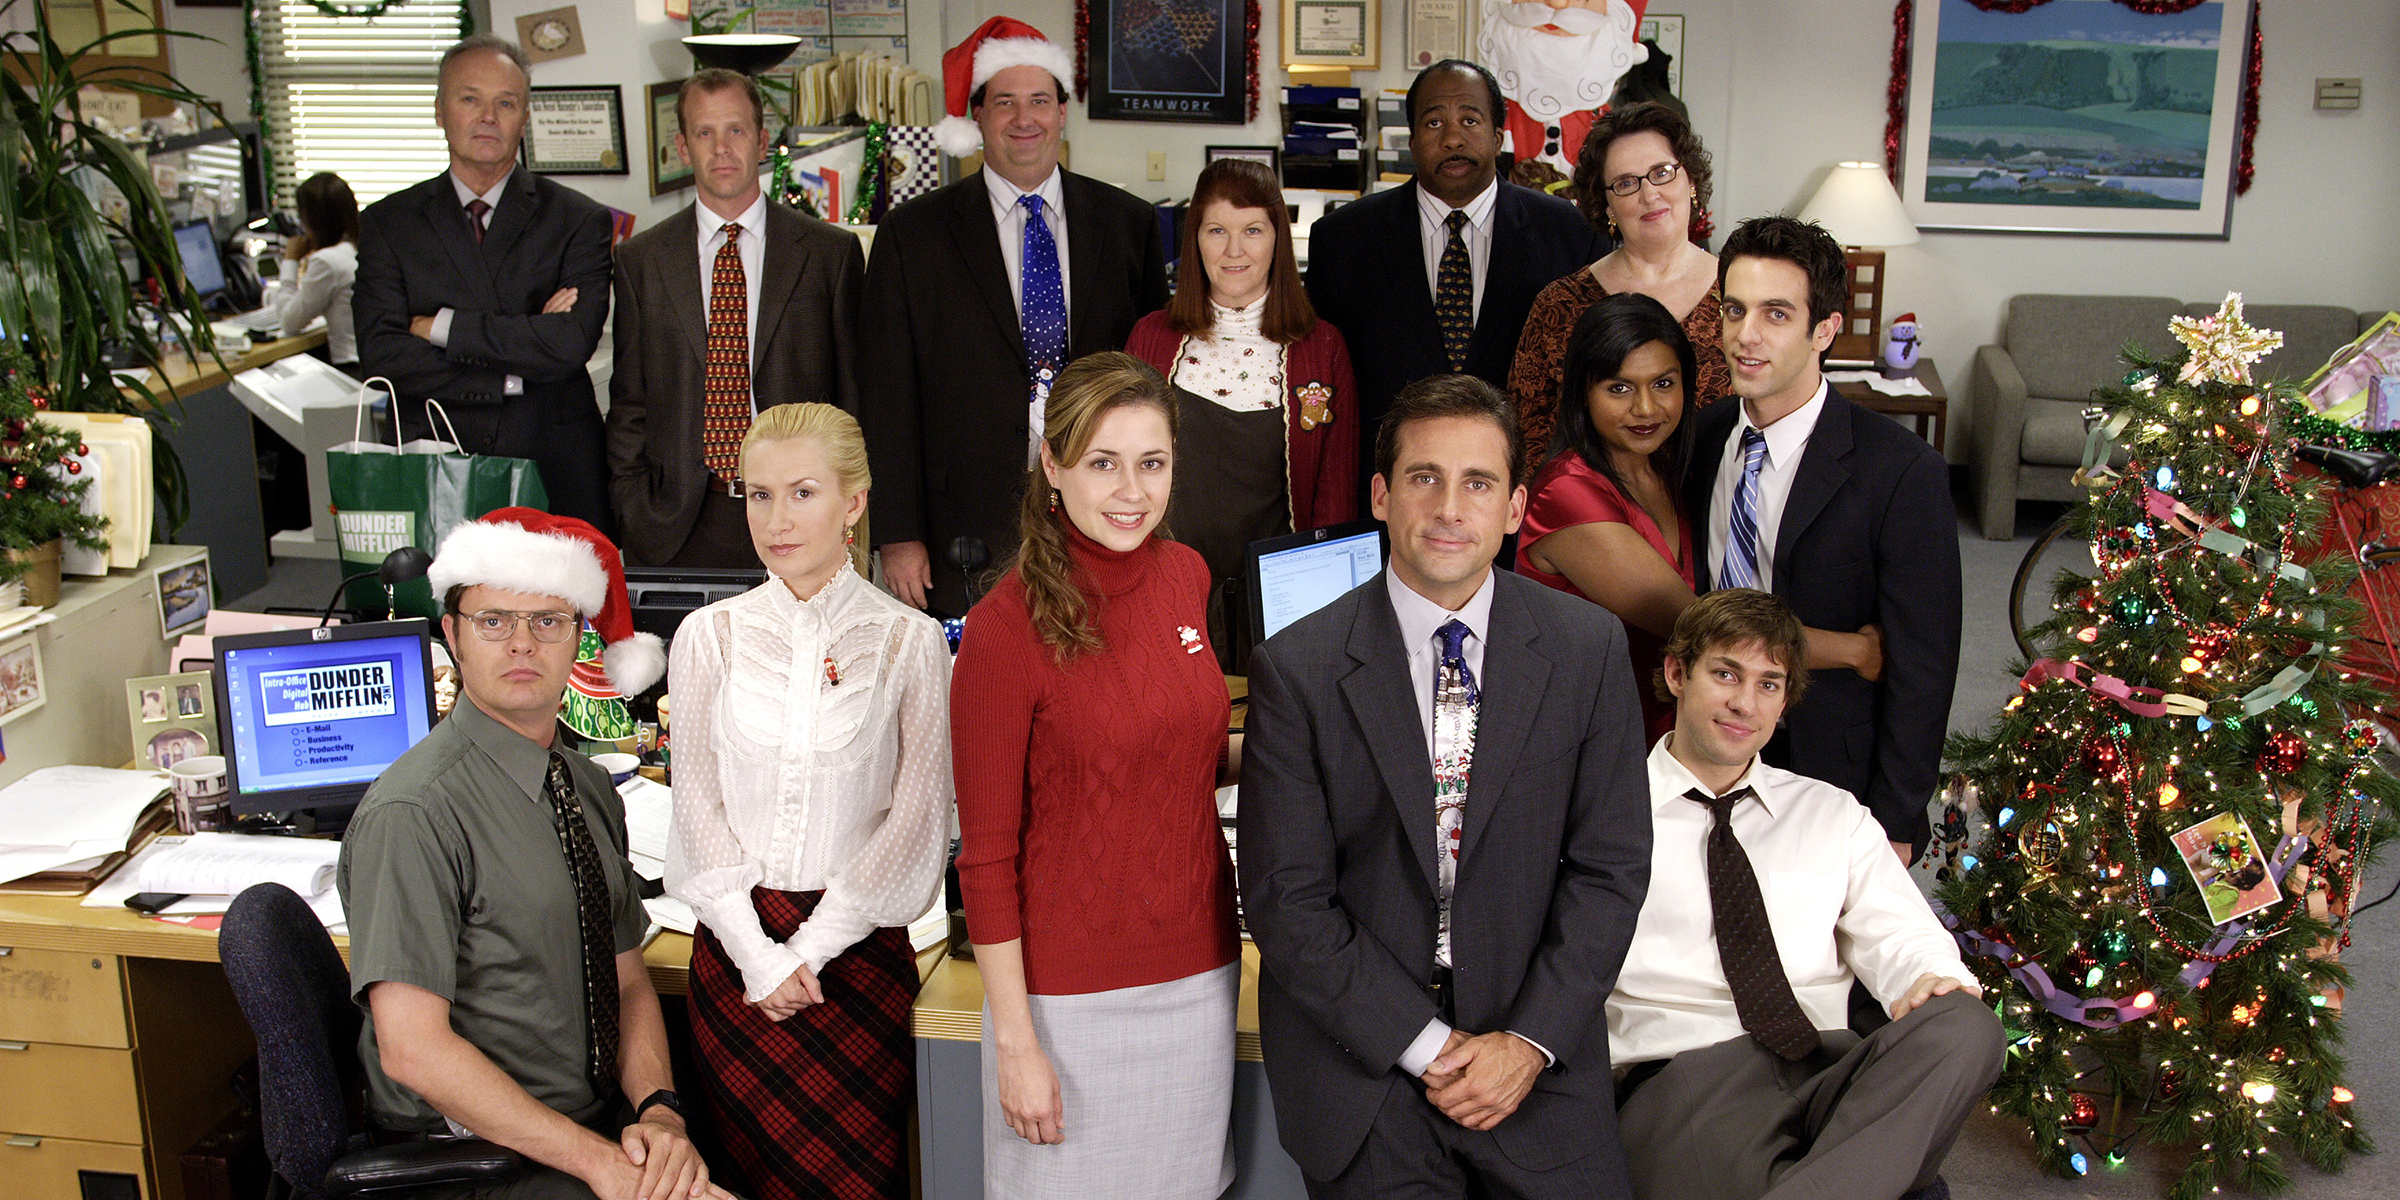 The Stars of The Office: Where Are They Now?